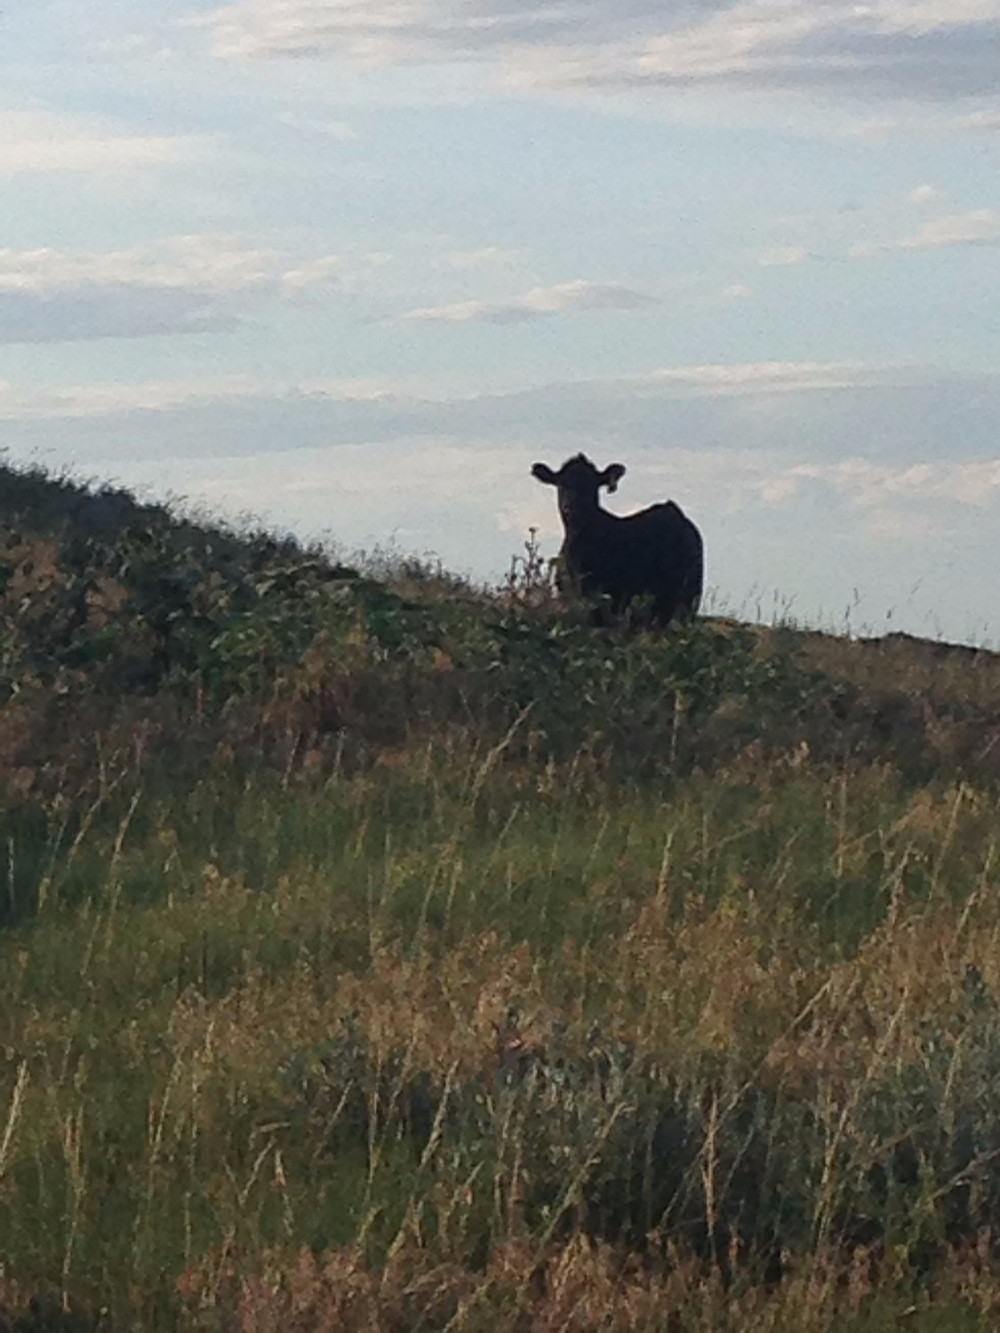 Sometimes you might encounter unexpected cows on your mountain, or a whole herd, and this might throw you off track, and you may get lost for a moment, as the sun is going down, but errrrrr, well that's a story for another day.